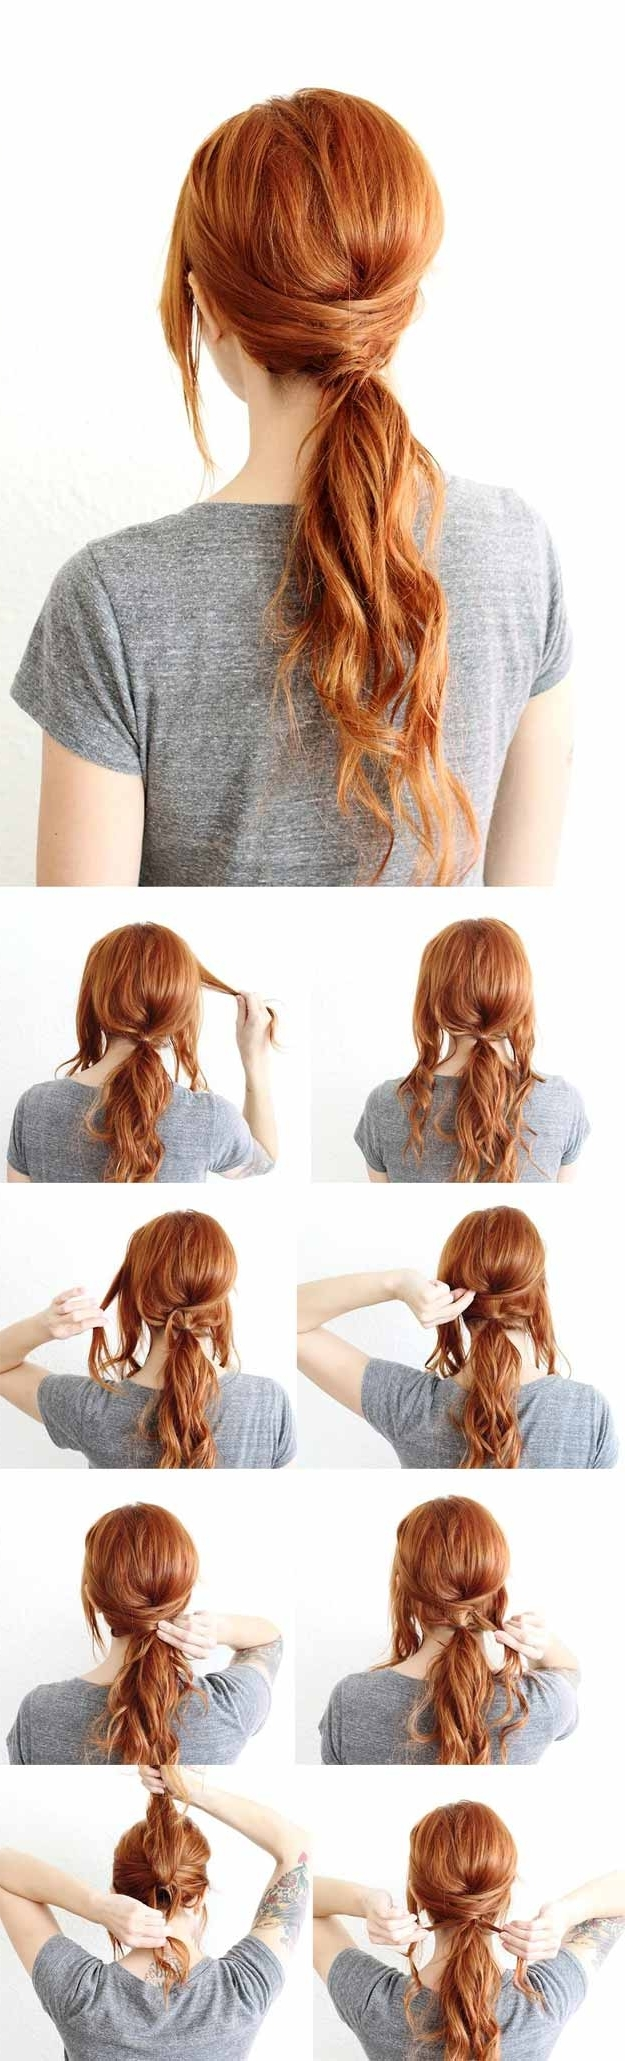 34 Super Sexy Hairstyles – The Goddess With Recent The Criss Cross Ponytail Hairstyles (View 1 of 20)